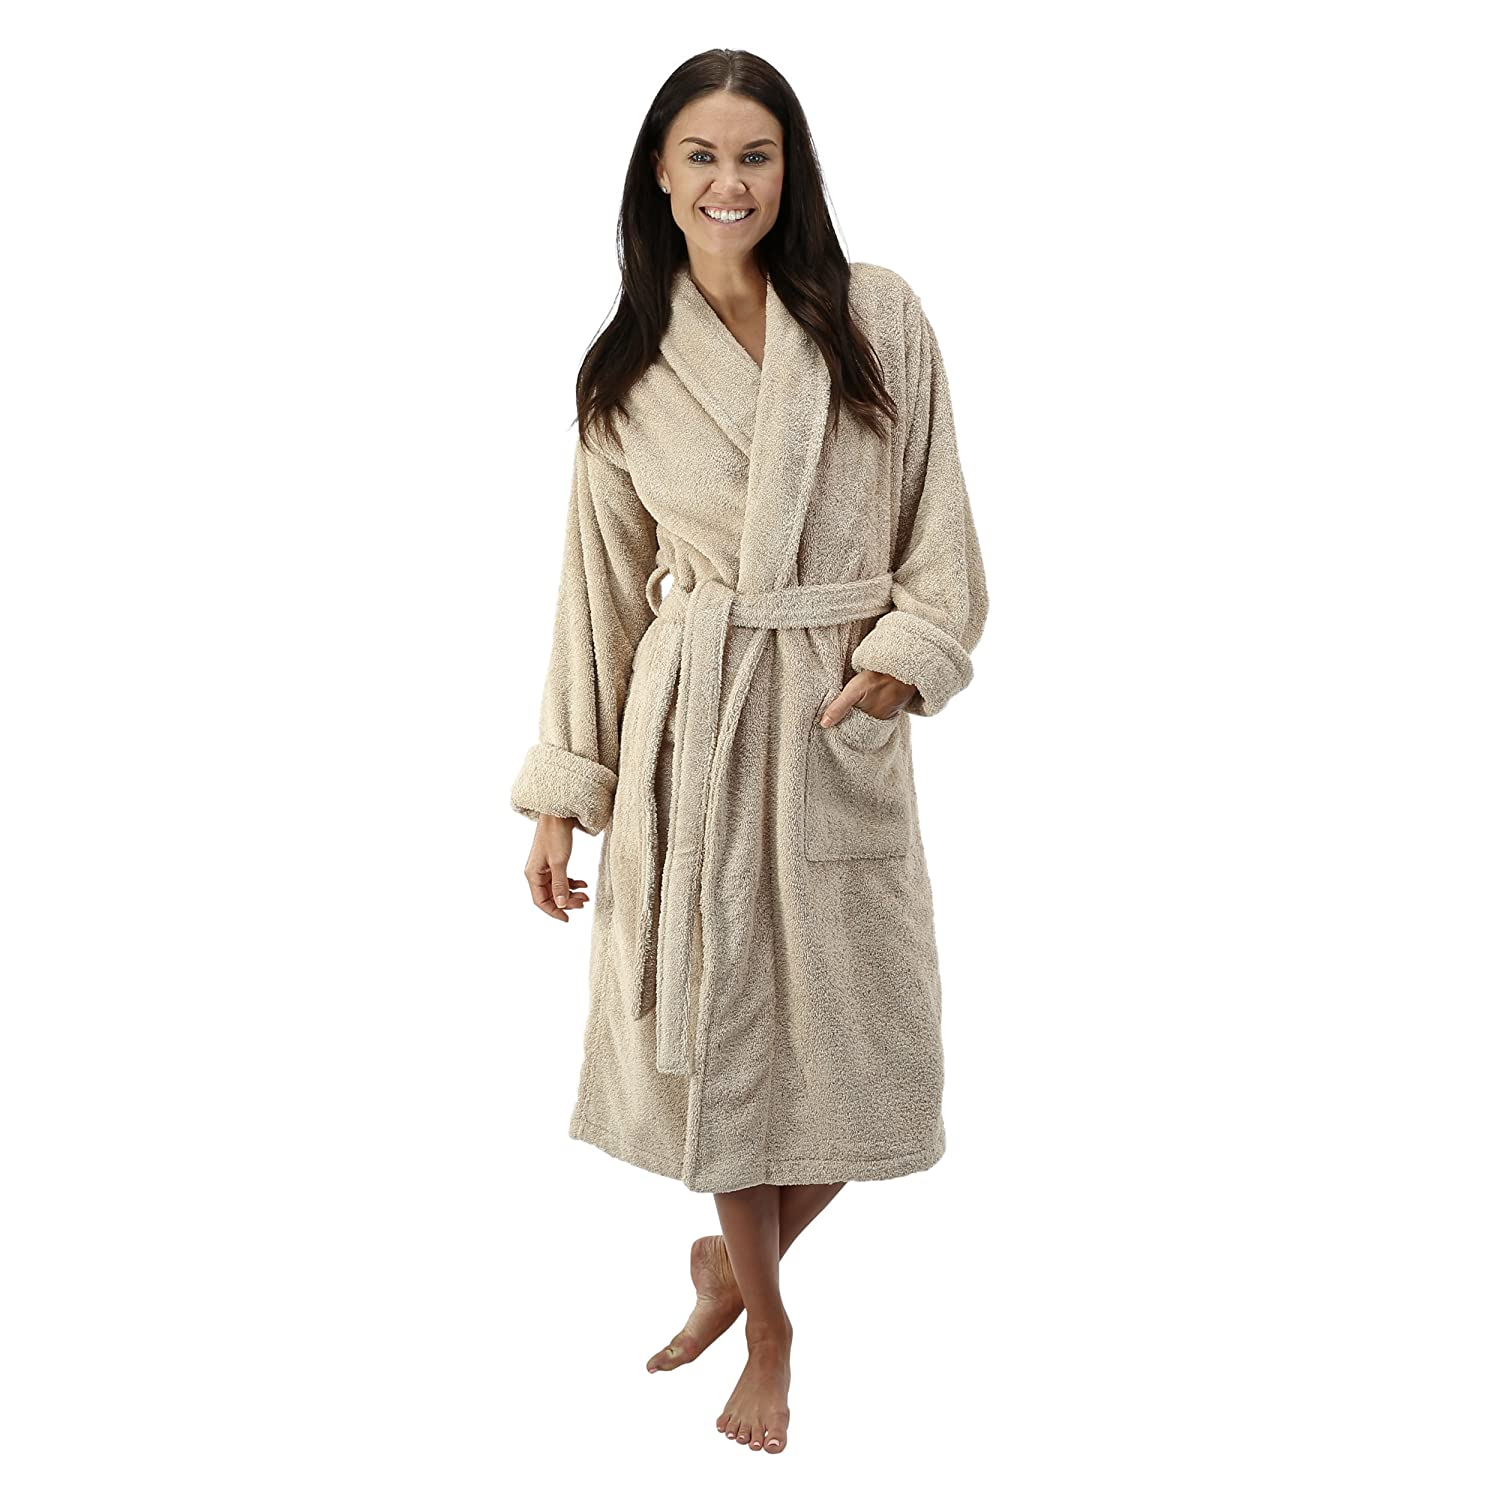 547e5601e2 Comfy Robes Women s Deluxe 20 oz. Turkish Terry Bathrobe at Amazon Women s  Clothing store